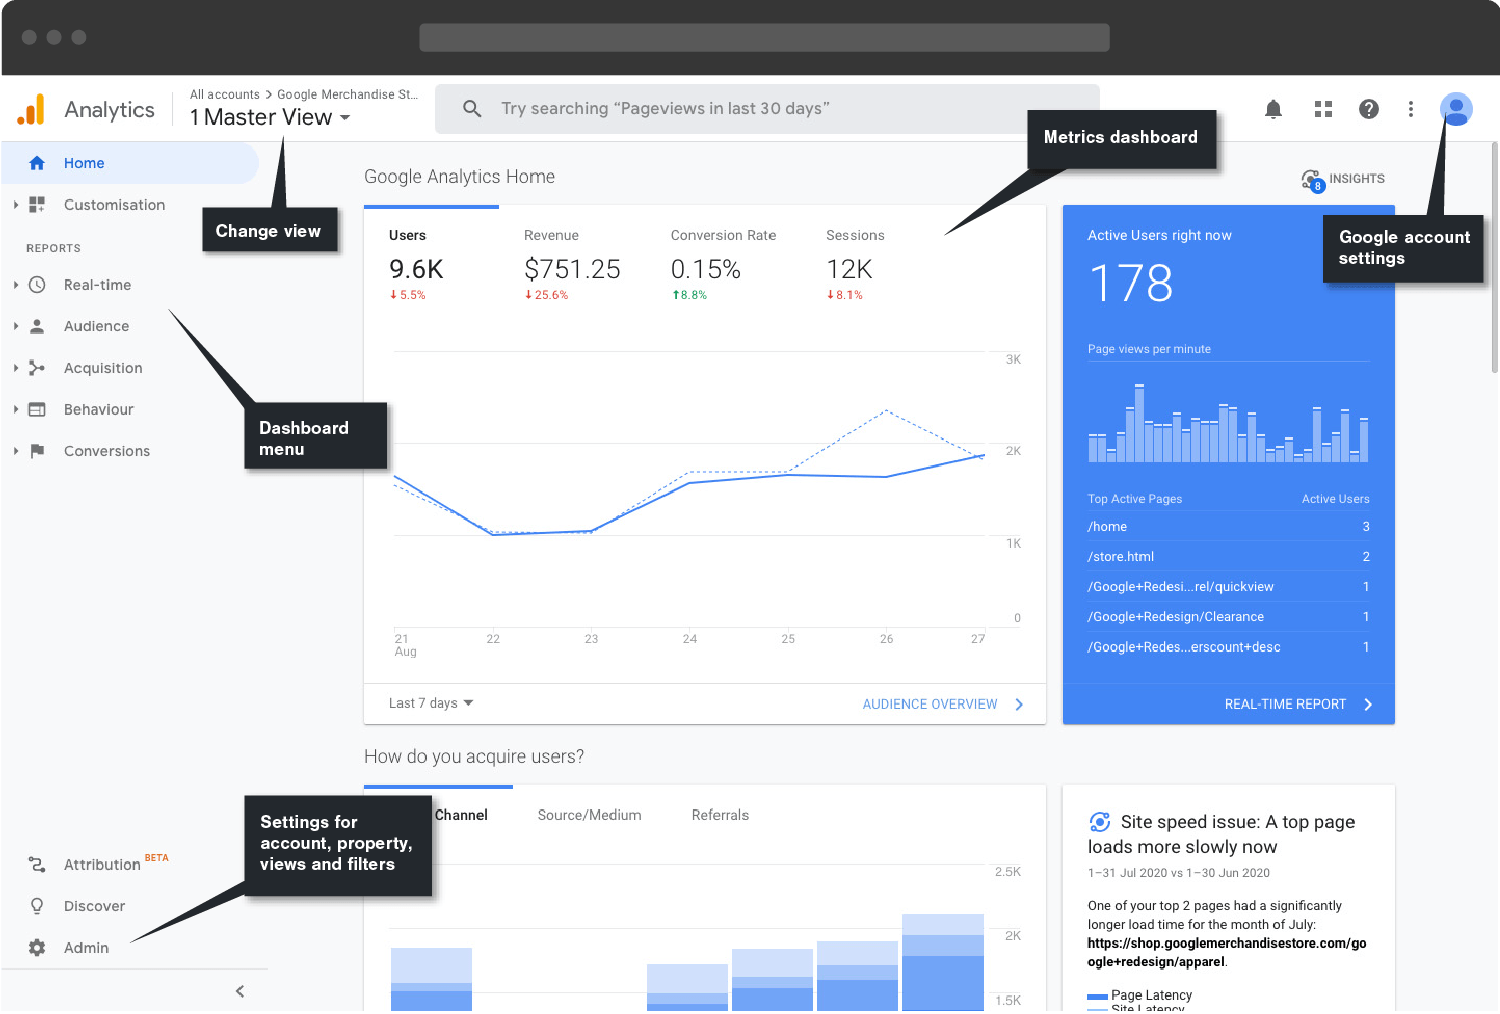 Google Analytics dashbaord overview